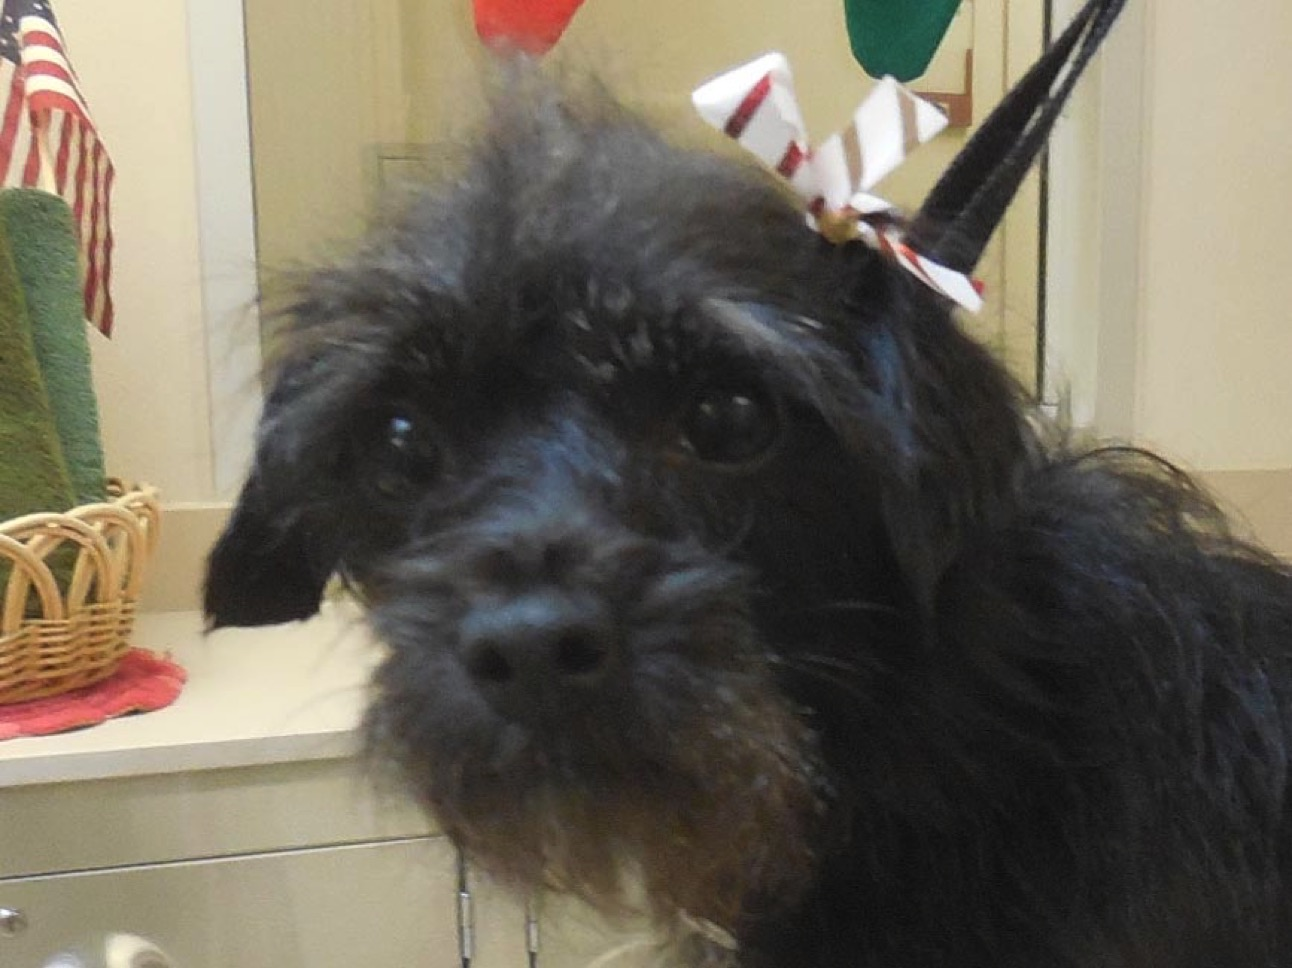 Adopt-a-Pet: Margarite and Natalie